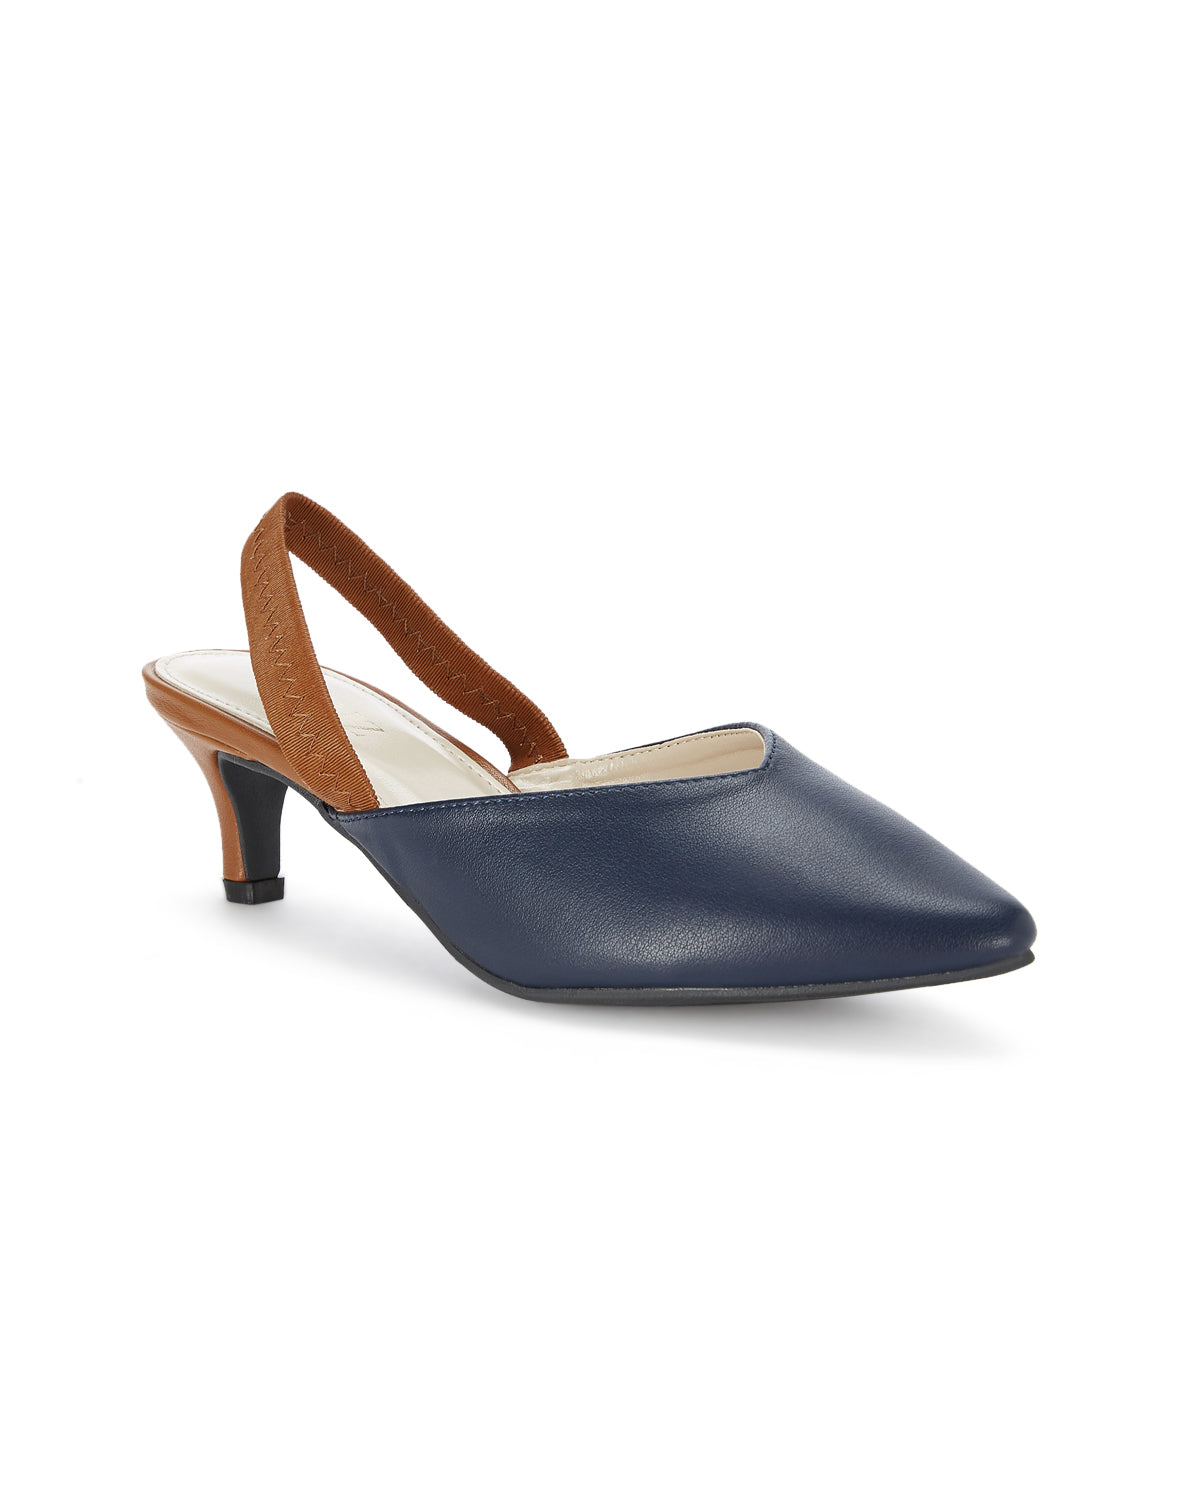 Frances Beautiful Navy Pumps